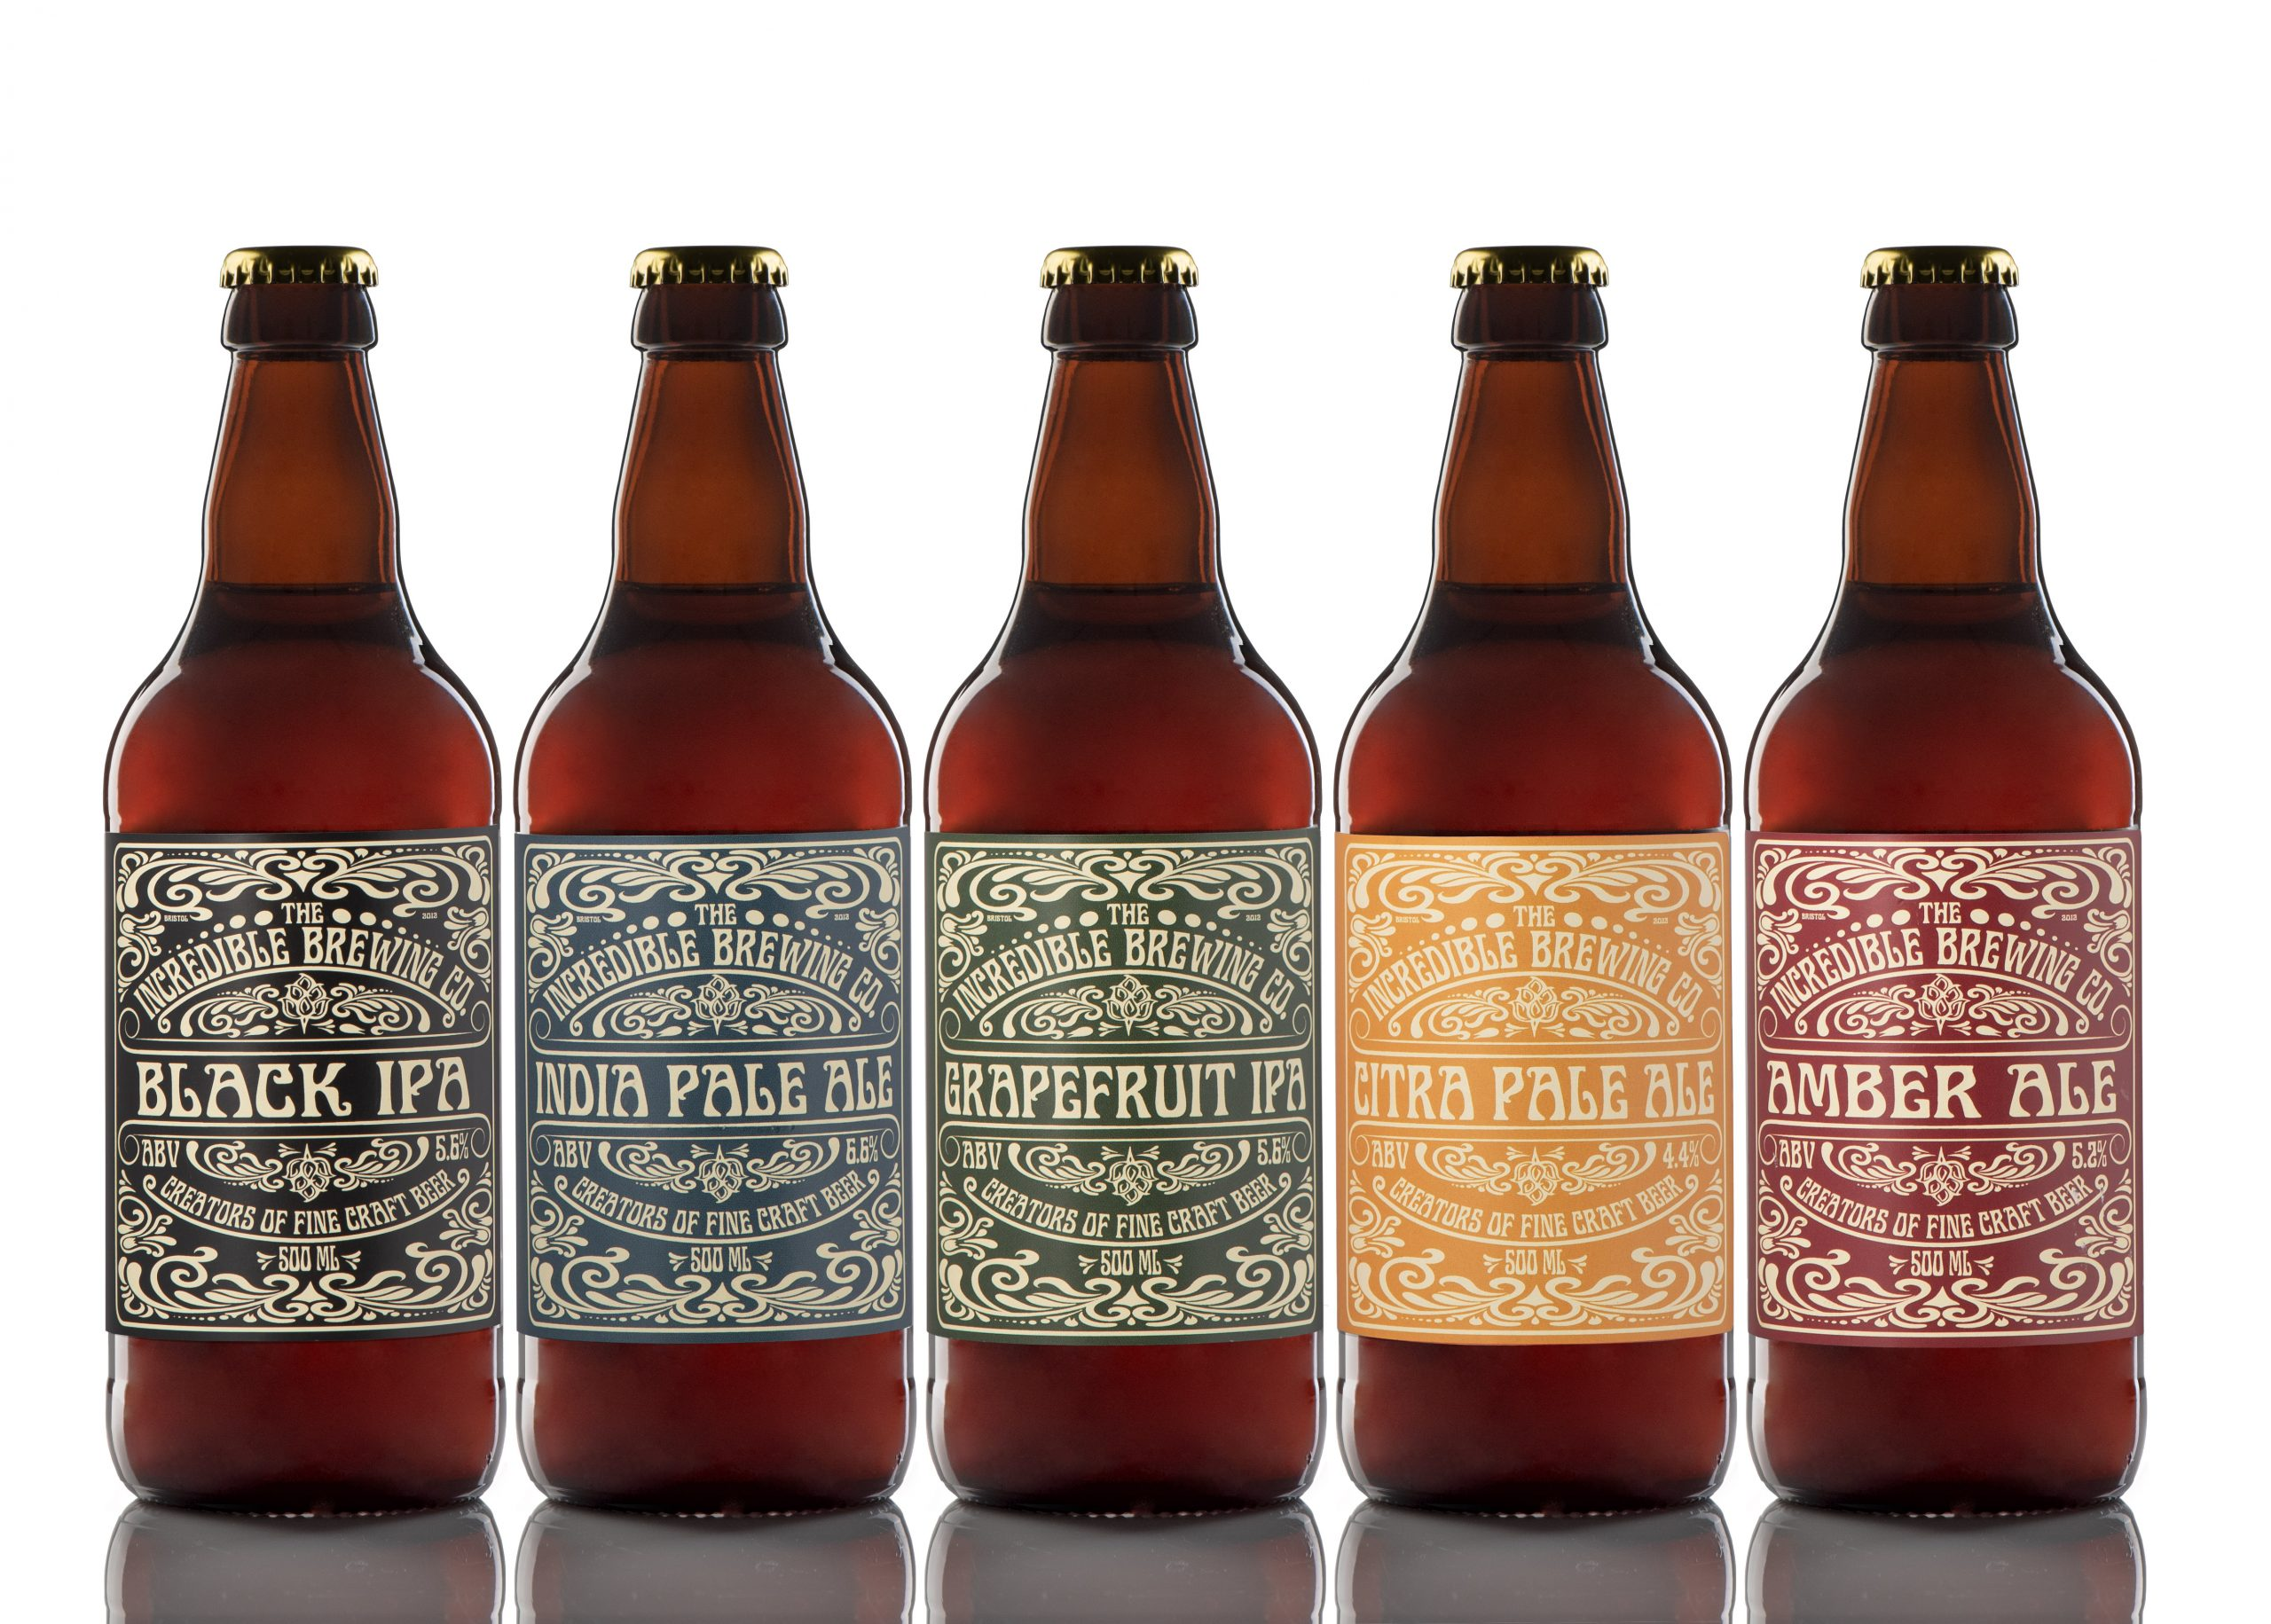 The incredible brewing range